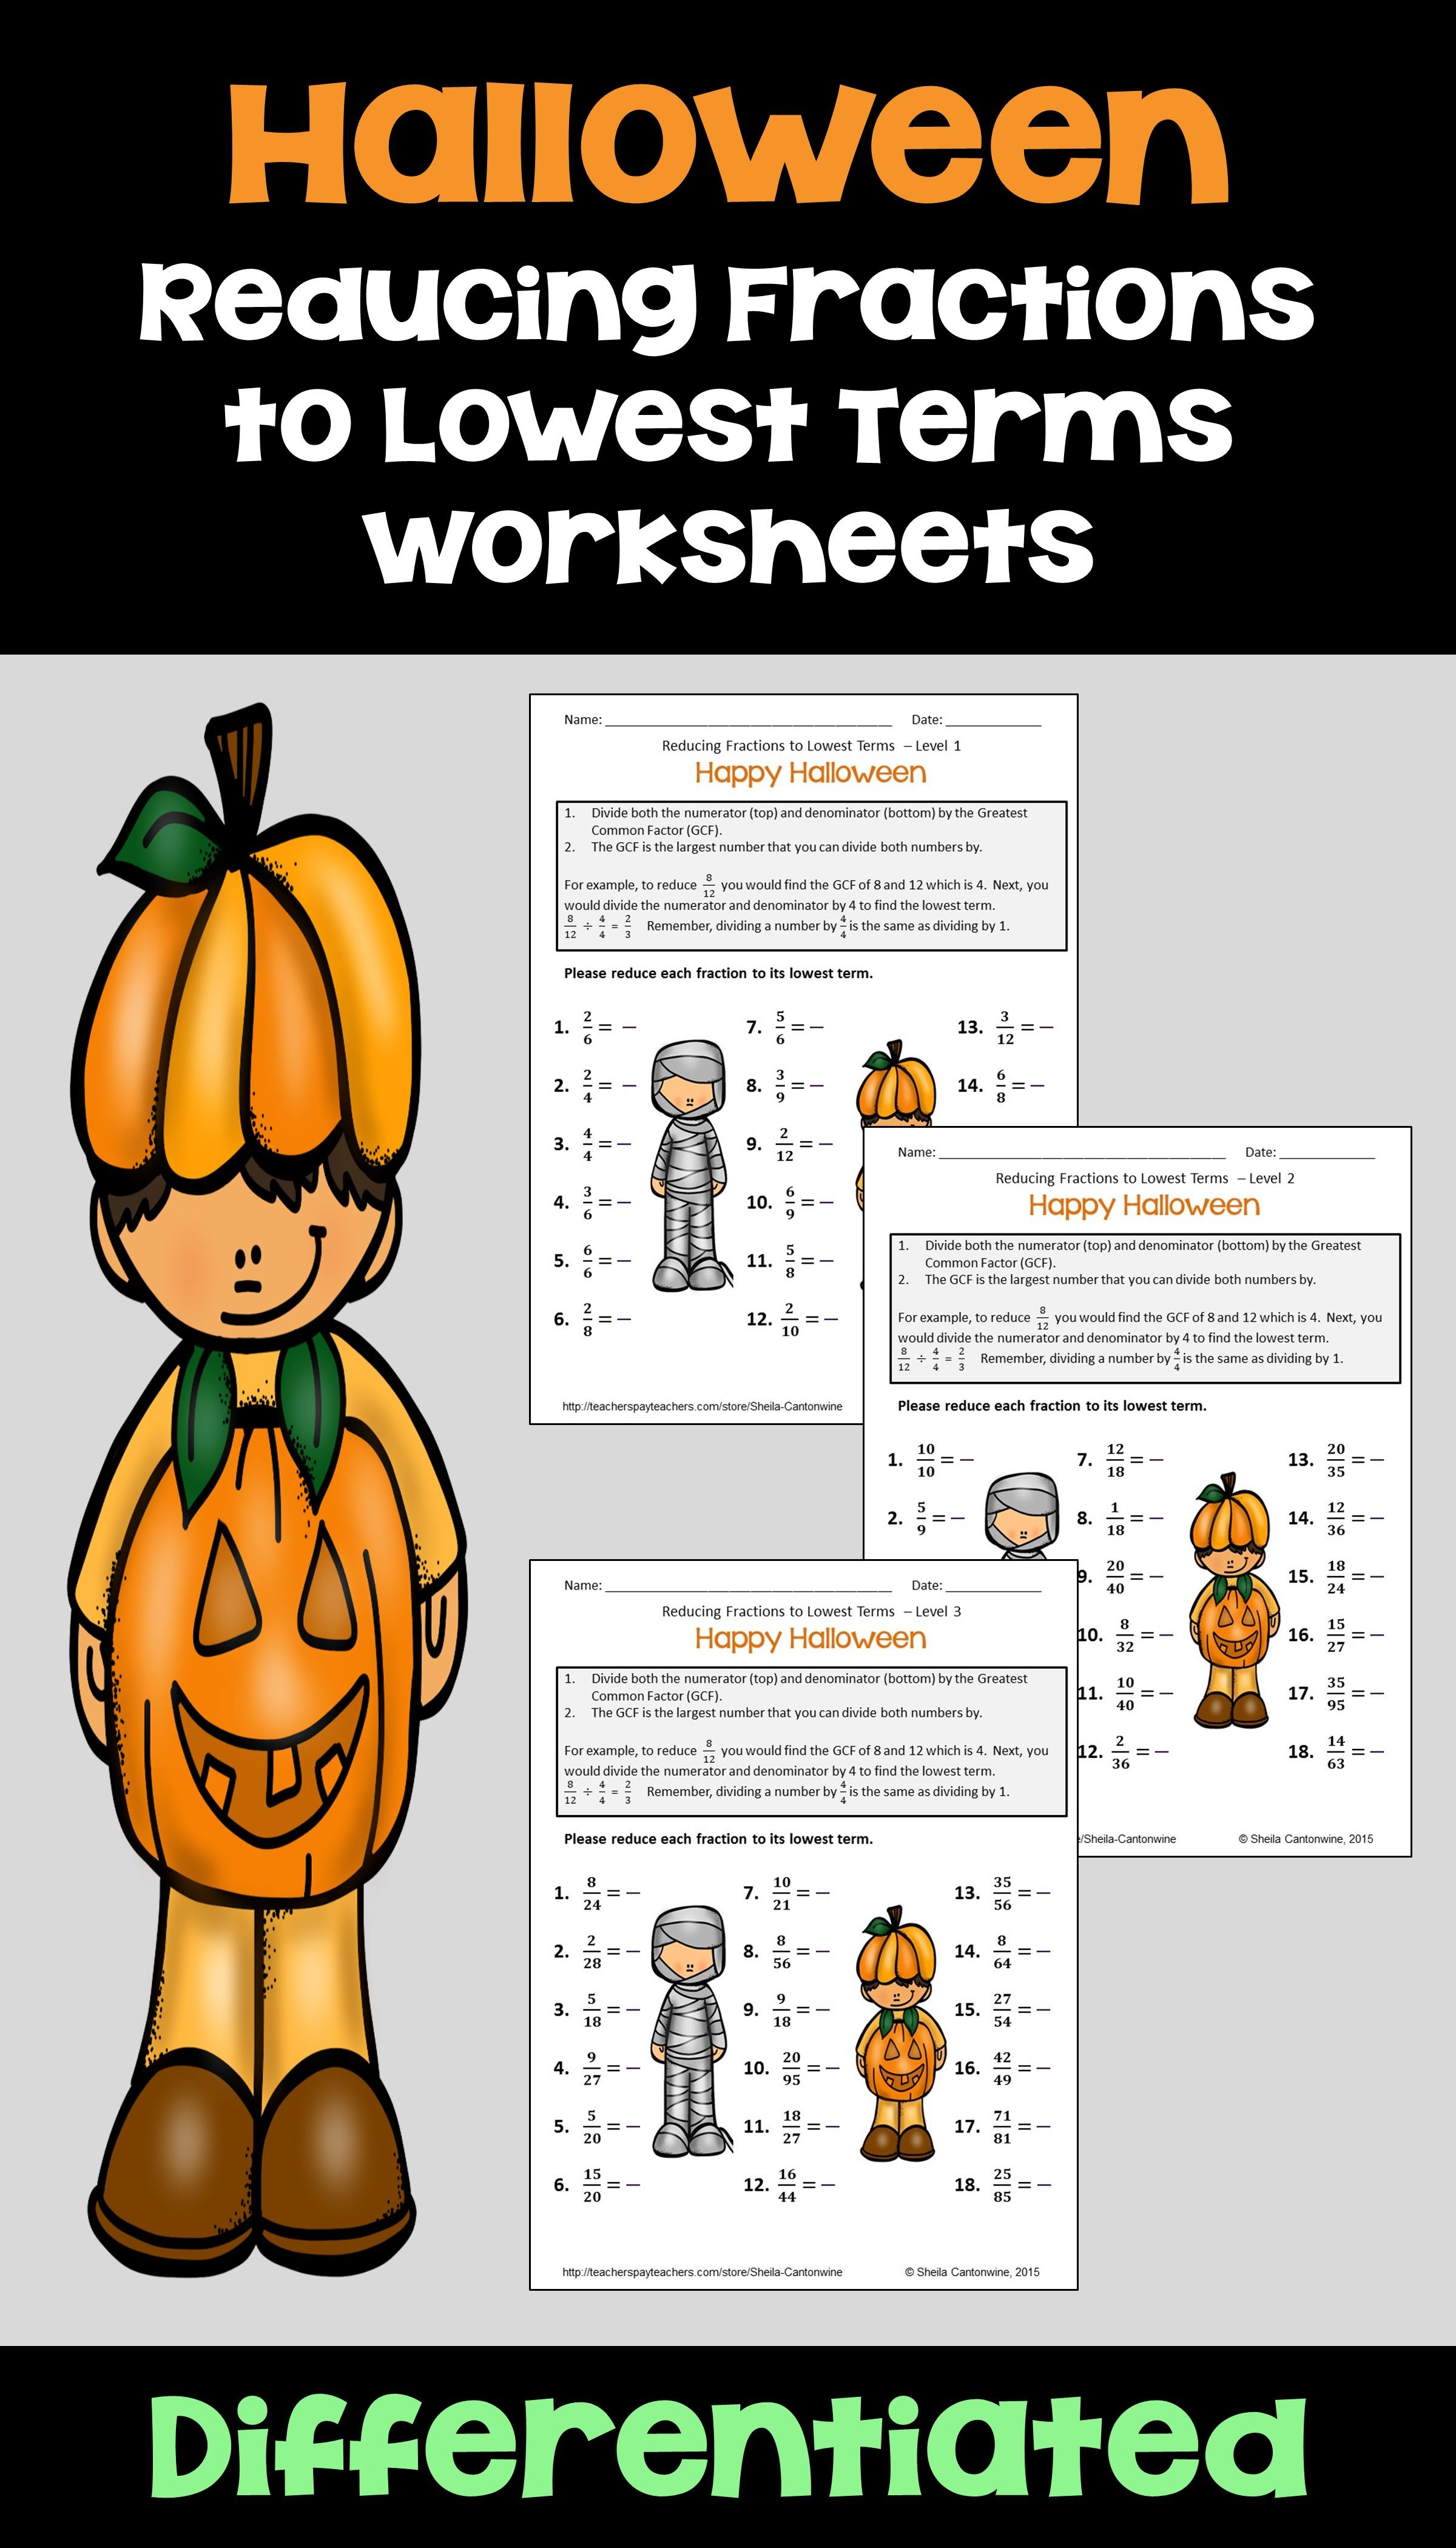 Halloween Simplifying Fractions Worksheets With Printable And Digital Options Simplifying Fractions Fractions Worksheets Fractions